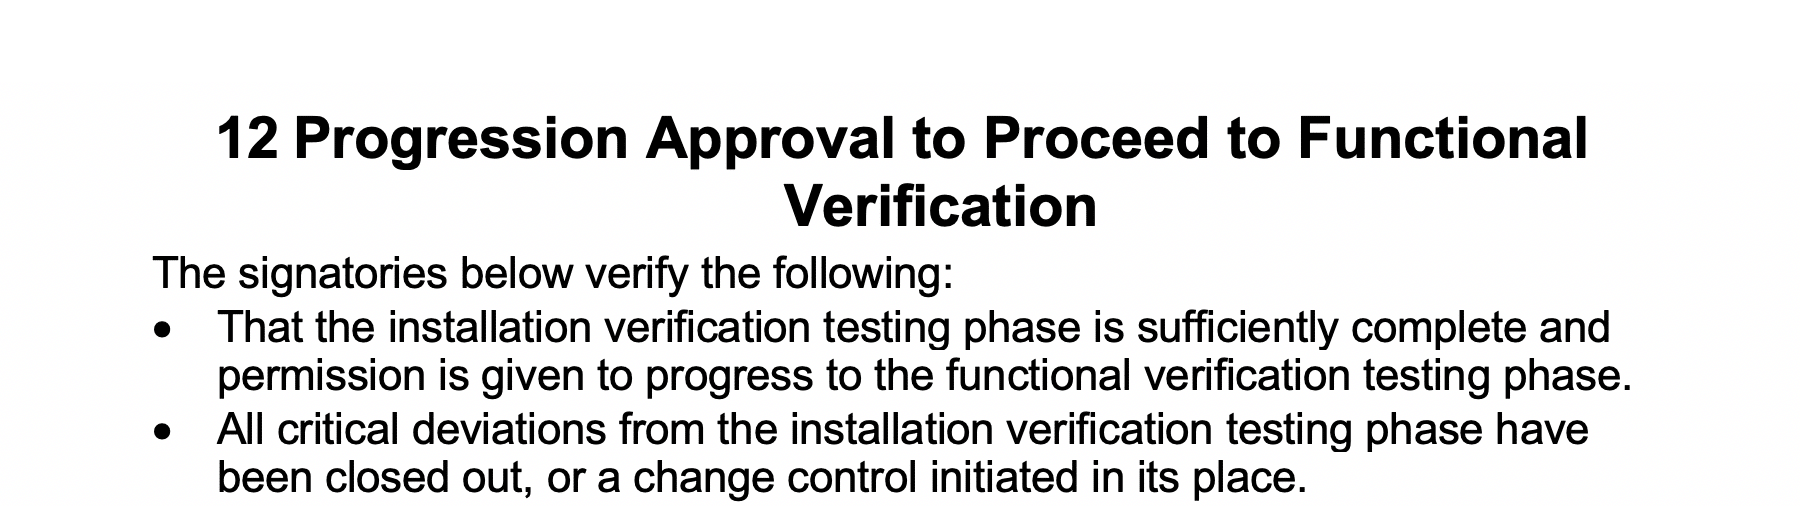 Progression Approval to Proceed to Functional Verification GetReskilled